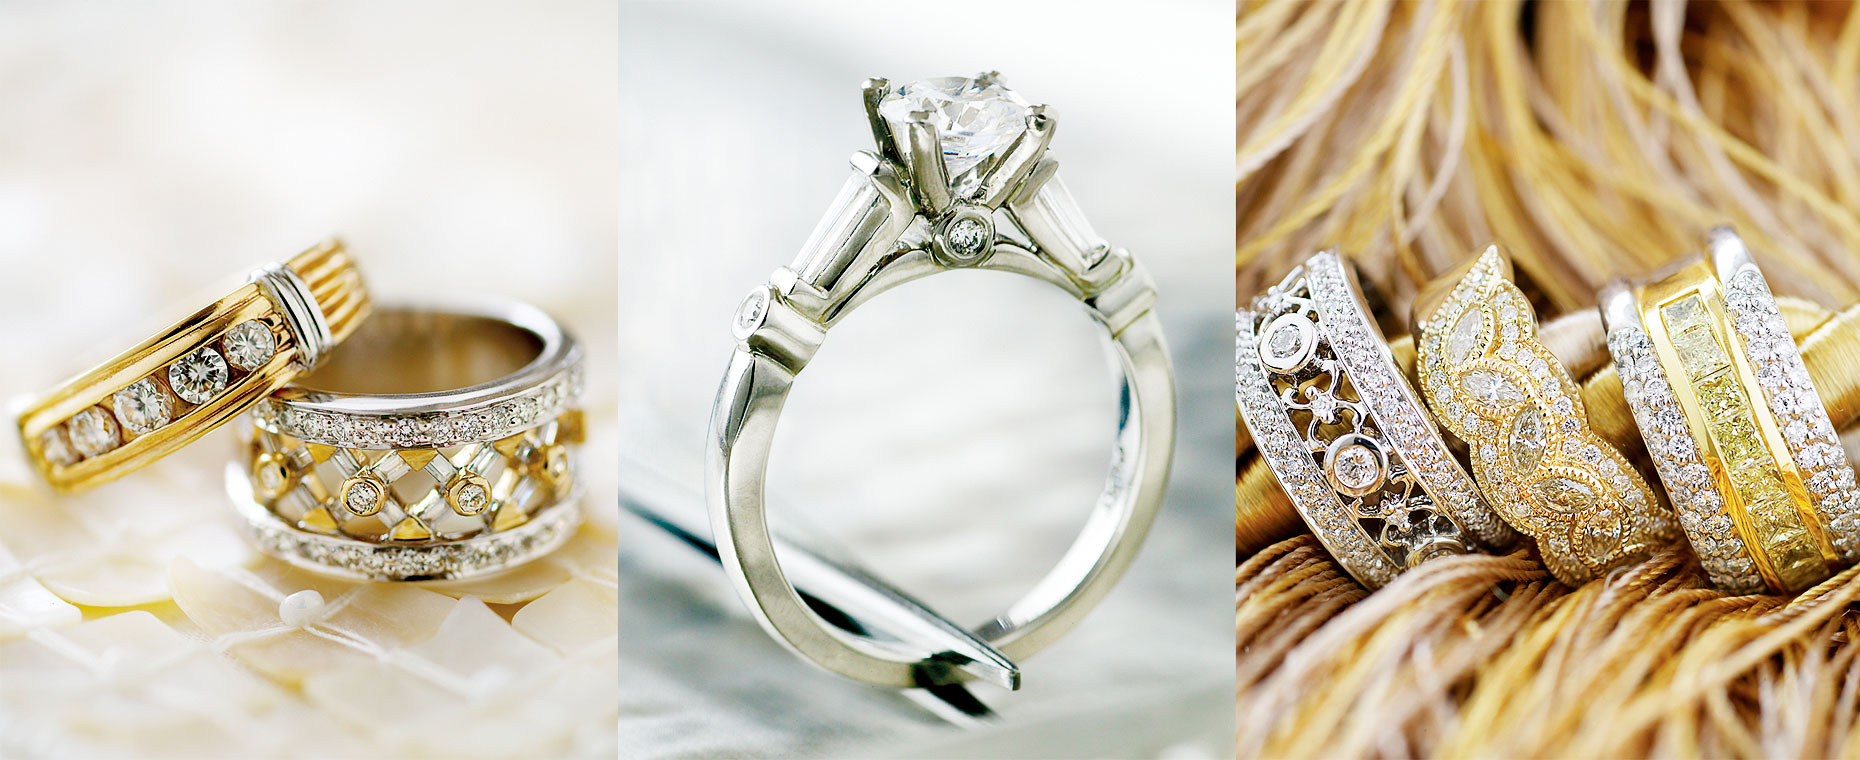 Rings-group.jpg